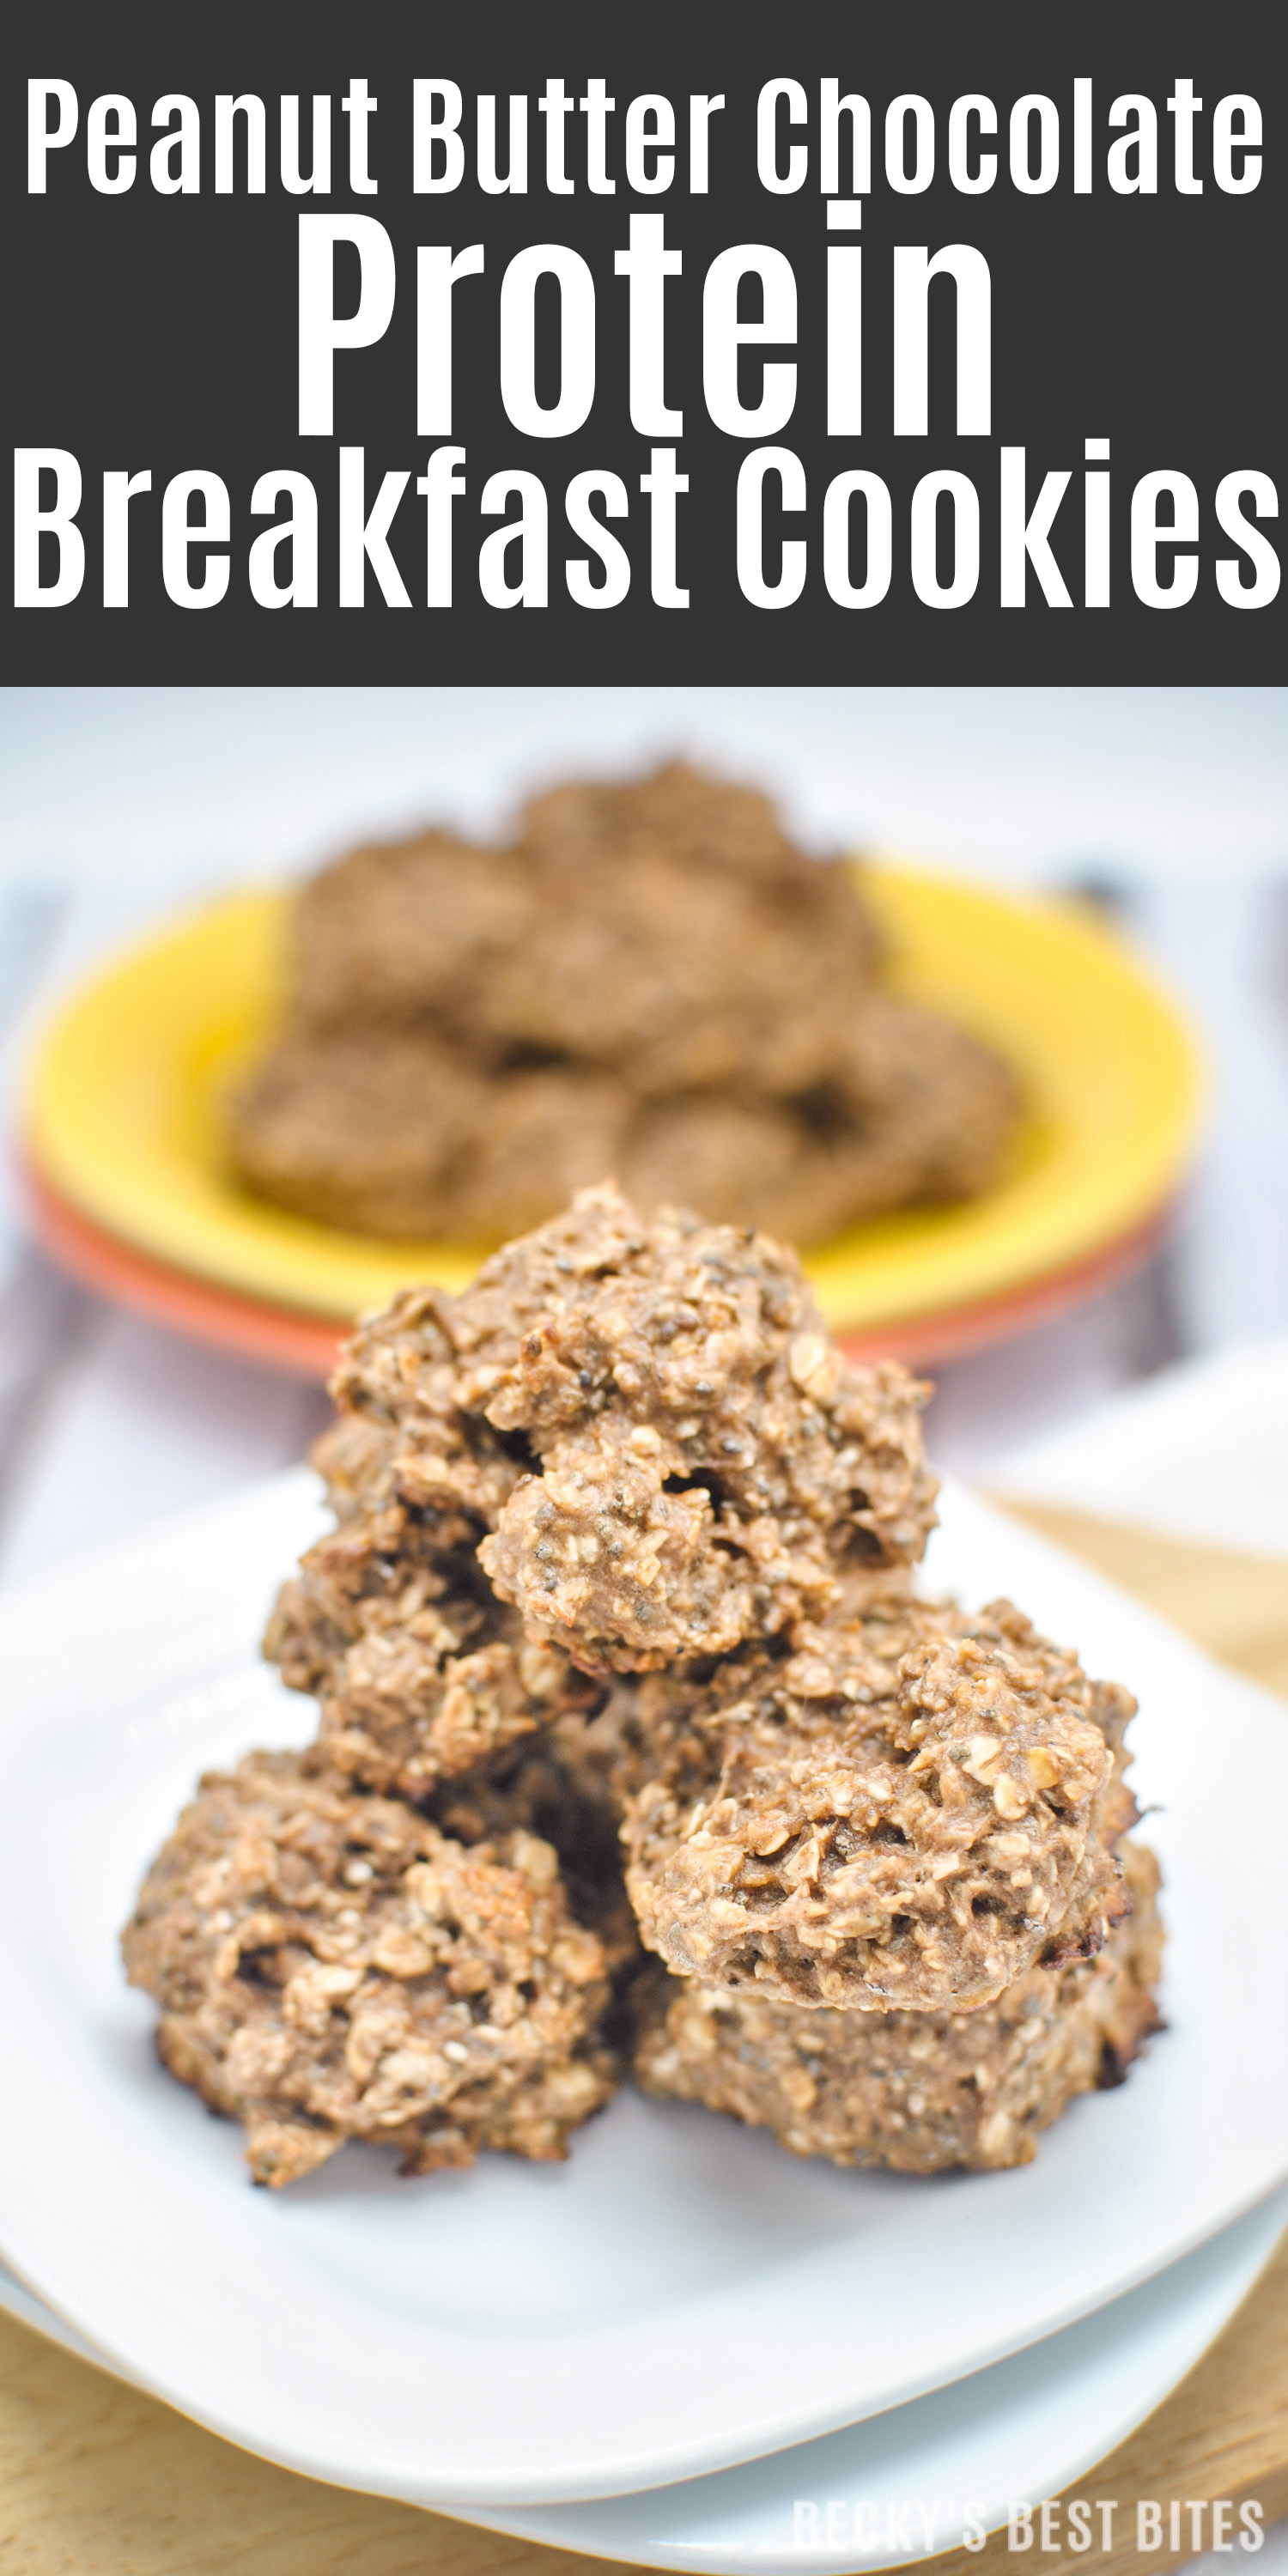 Peanut Butter Chocolate Protein Breakfast Cookies are a super easy & healthy recipe containing no added sugar or flour, limited ingredients & they are fresh out of the oven and ready in 15 minutes! | beckysbestbites.com